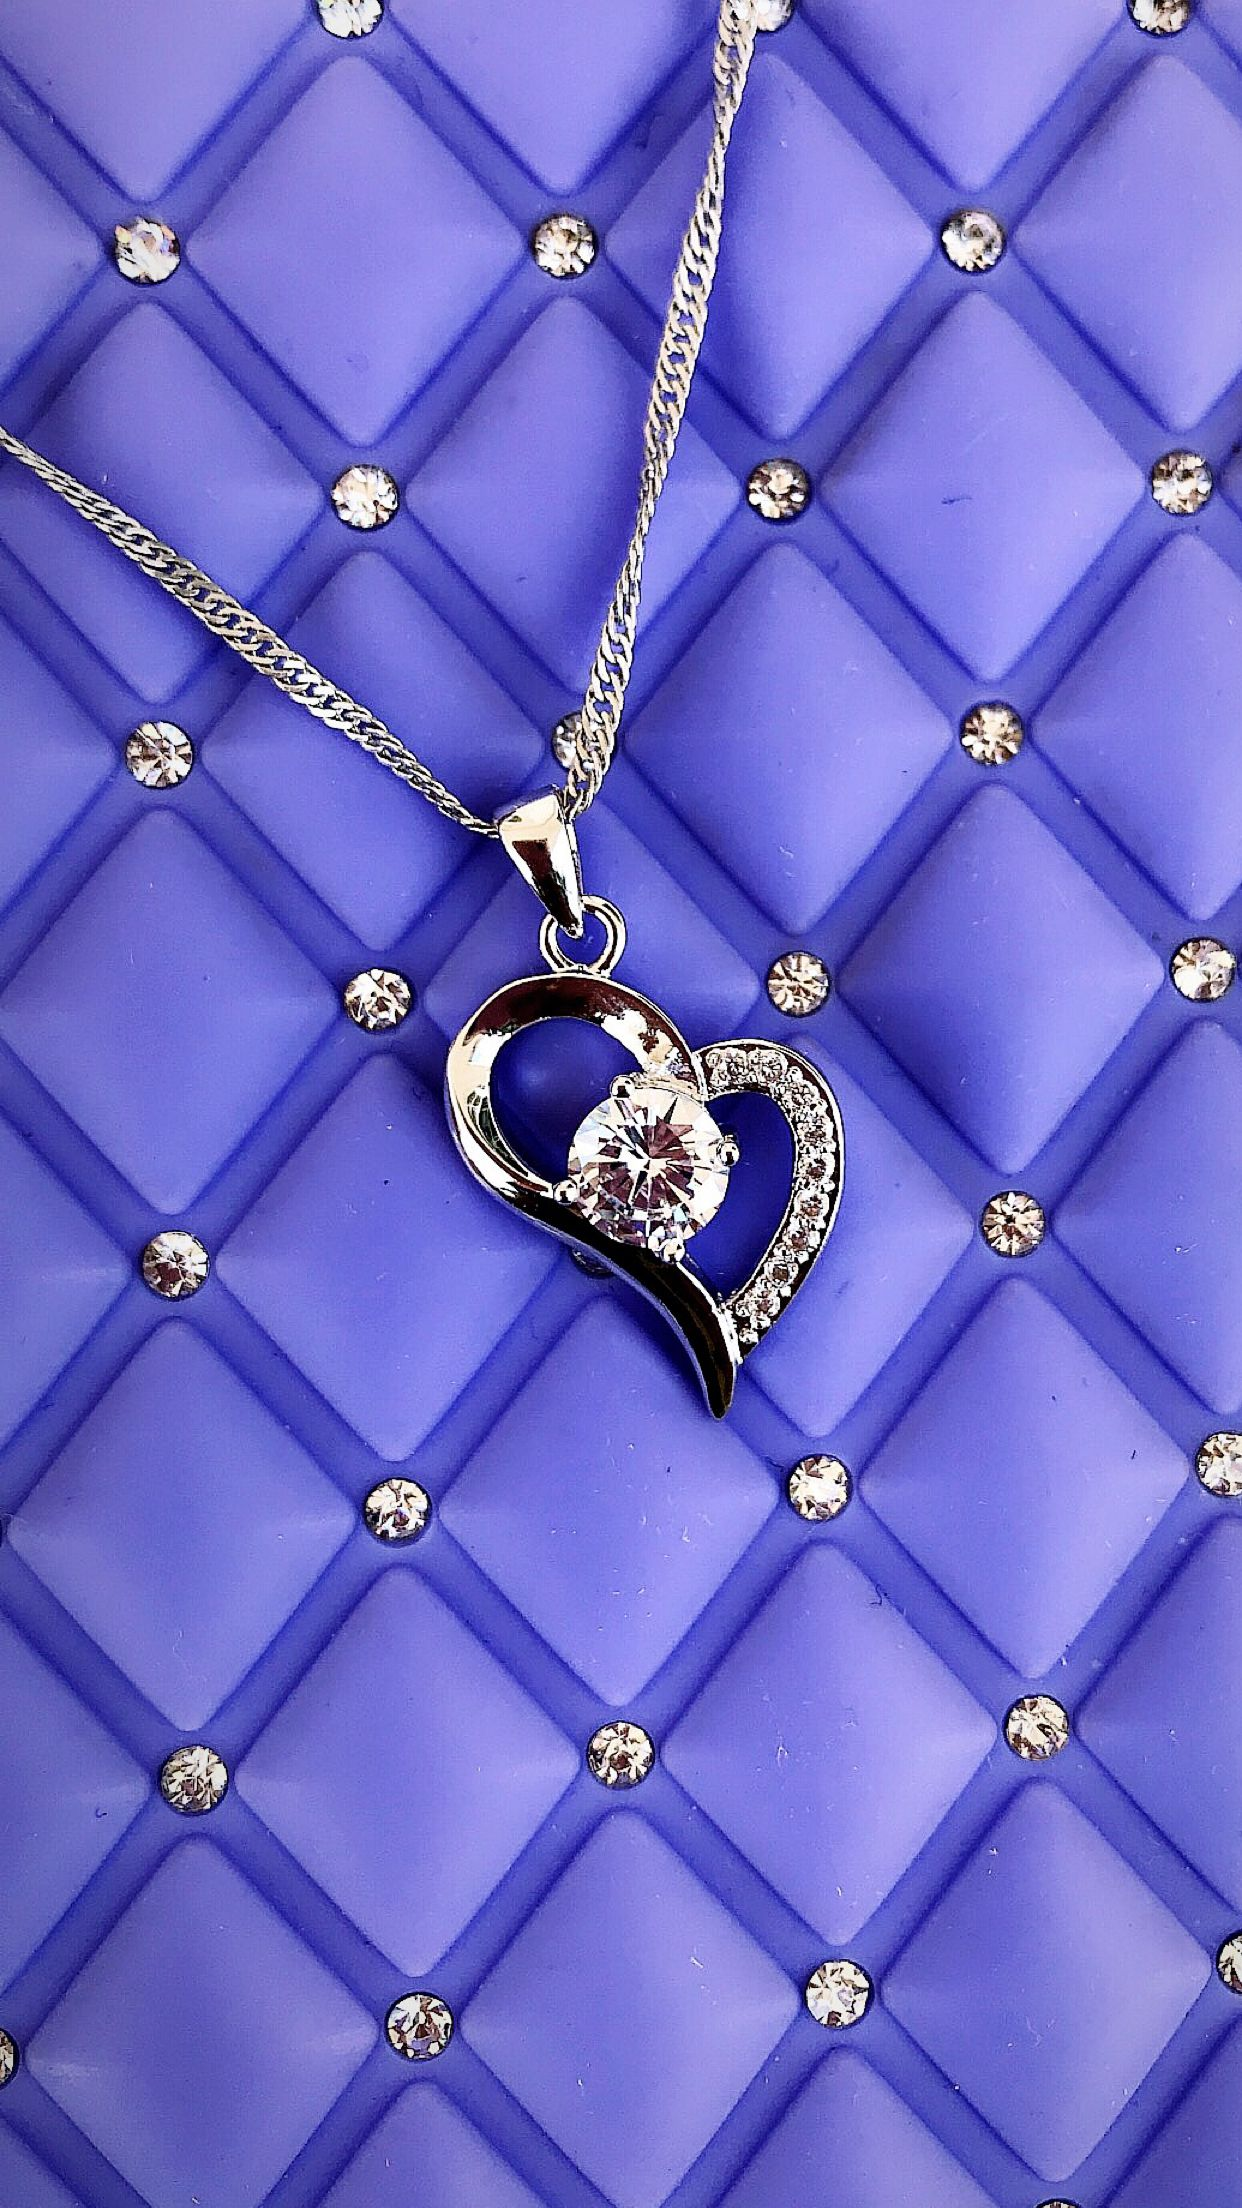 Flashiieaccessories | Women's Jewelry and Accessories Online